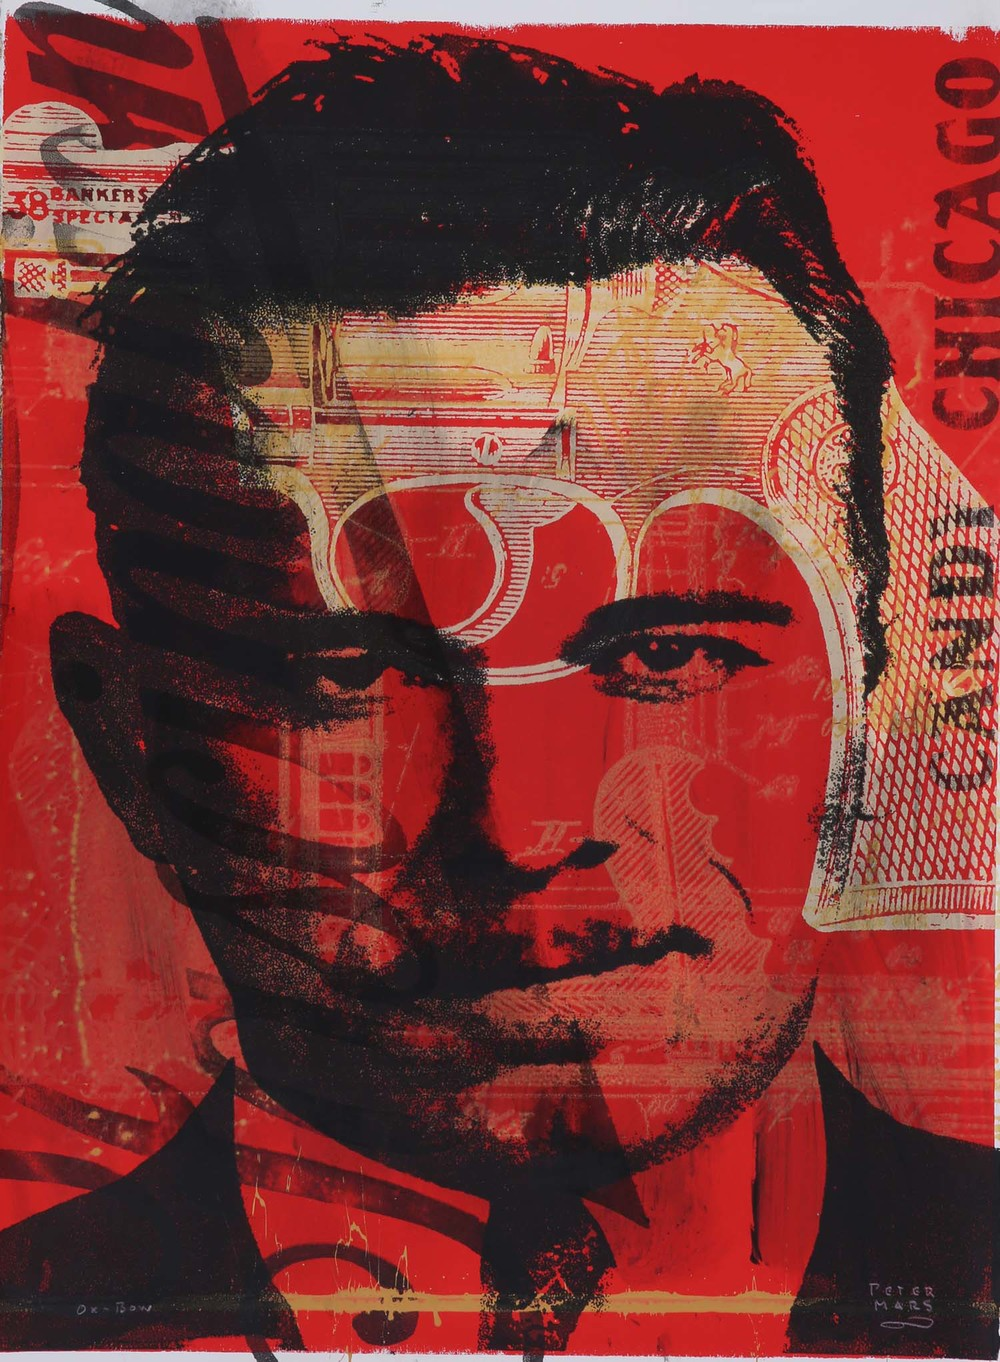 John Dillinger in Chicago ,    Peter Mars, American Pop Art, 30x40""